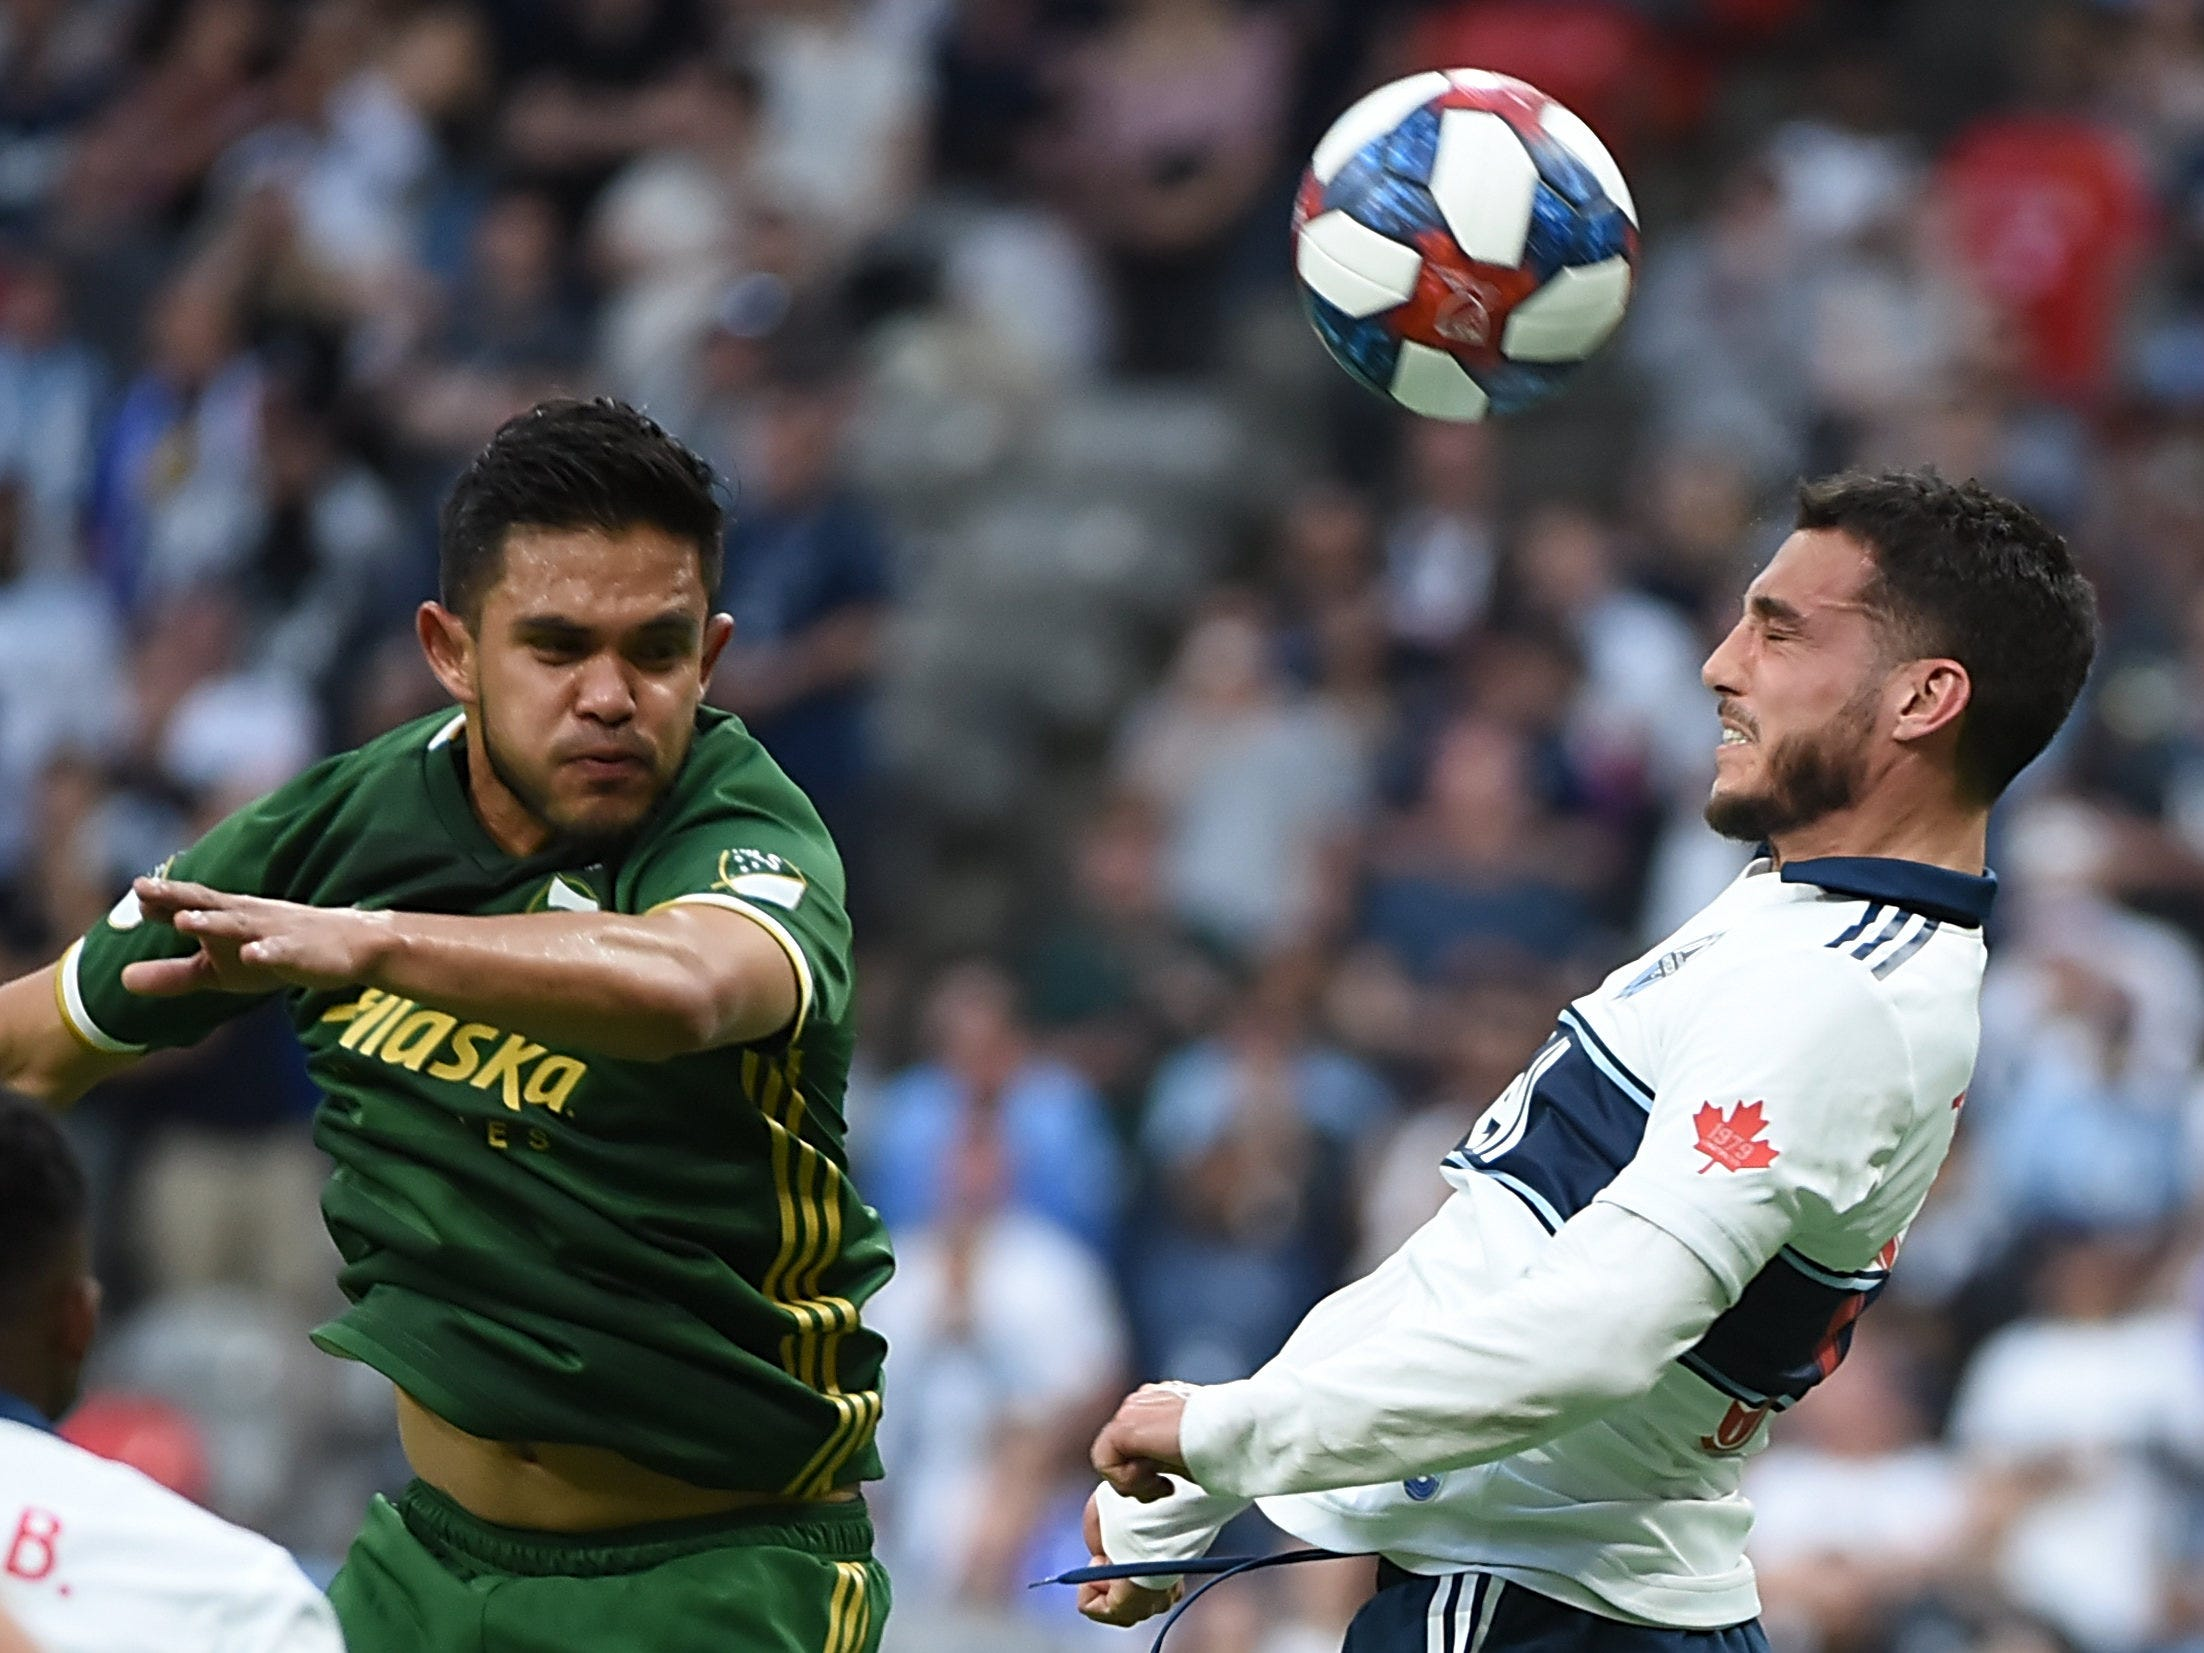 May 10: Vancouver Whitecaps midfielder Russell Teibert (31) goes up for a header against Portland Timbers midfielder Andres Flores (14) during the first half at BC Place. Vancouver won the game, 1-0.